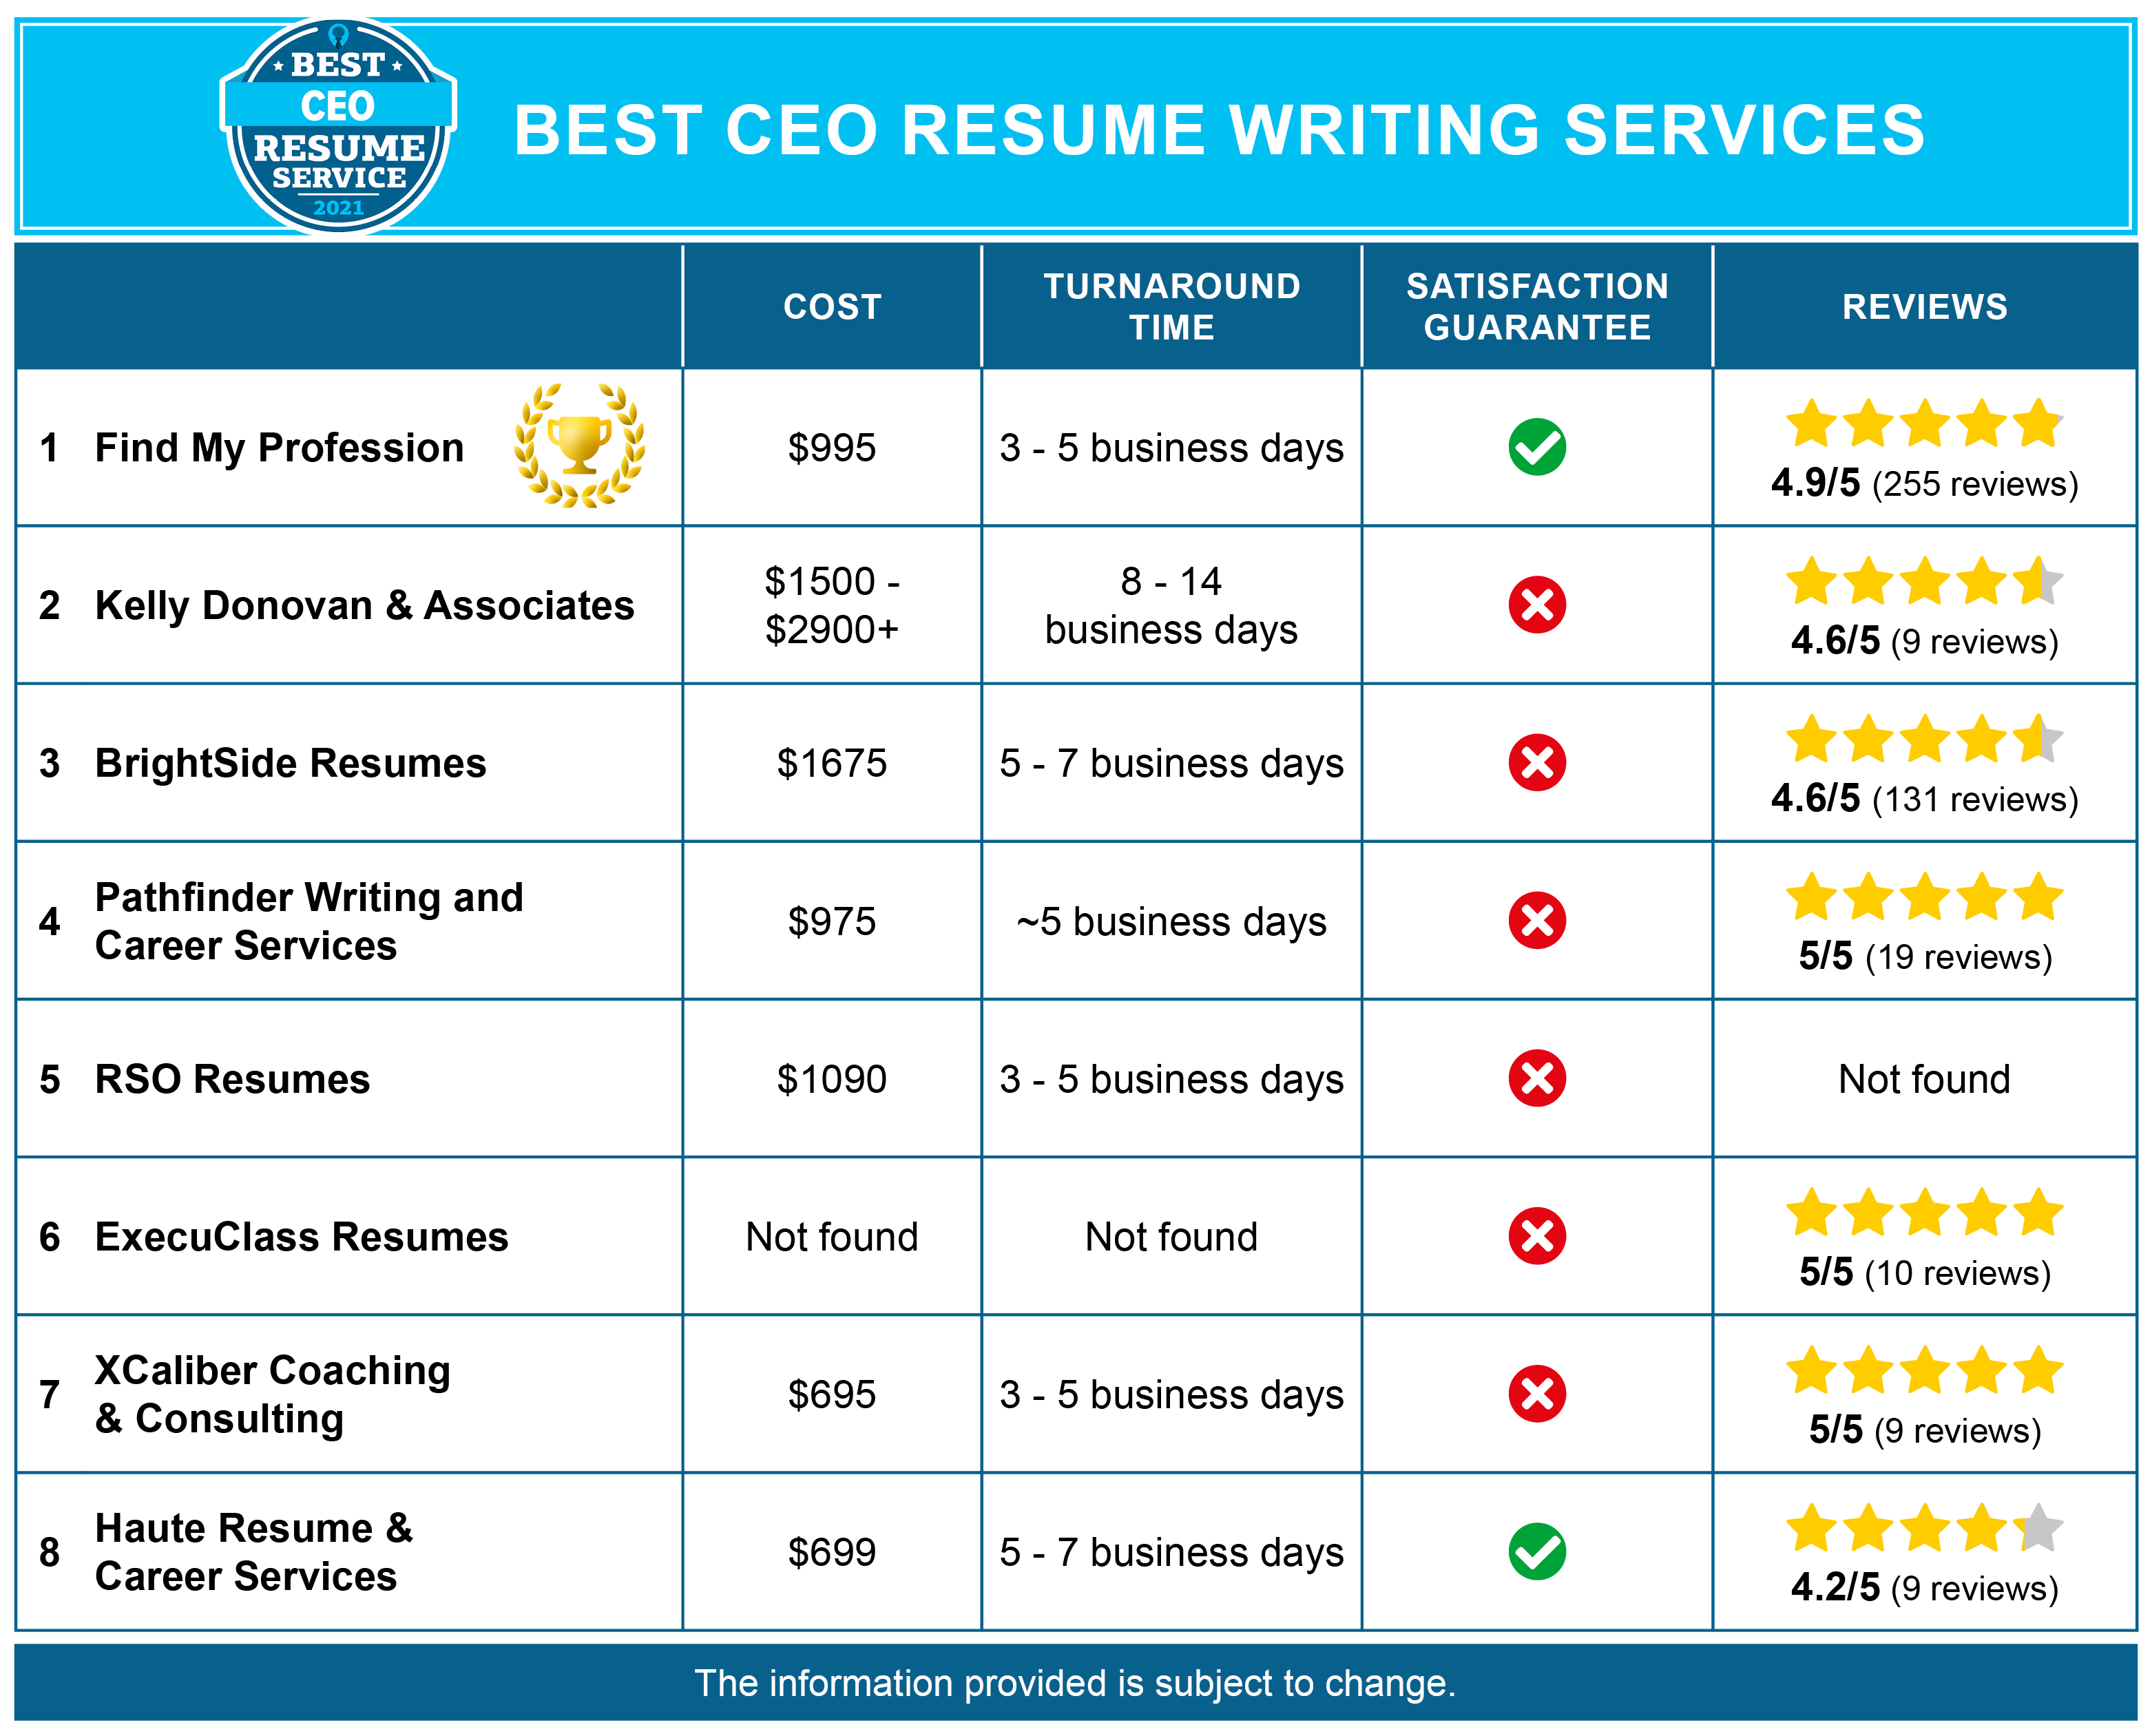 8 Best Chief Executive Officer Resume Services (CEO)